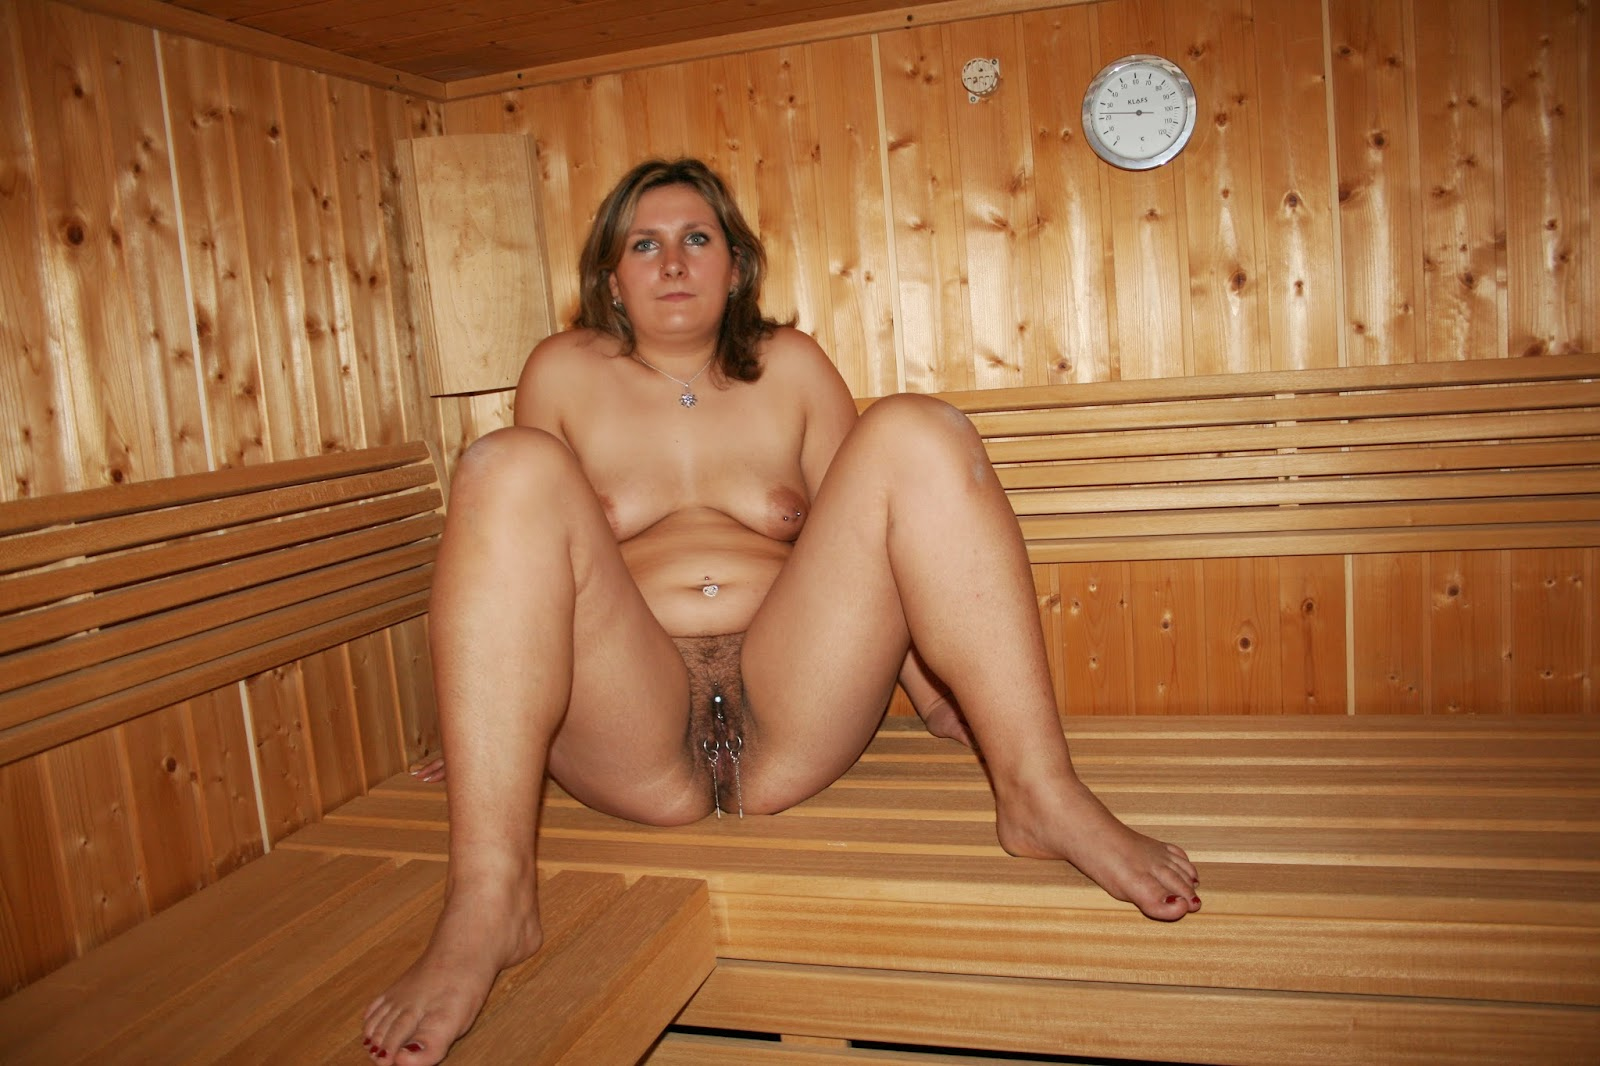 Naked Women In A Sauna